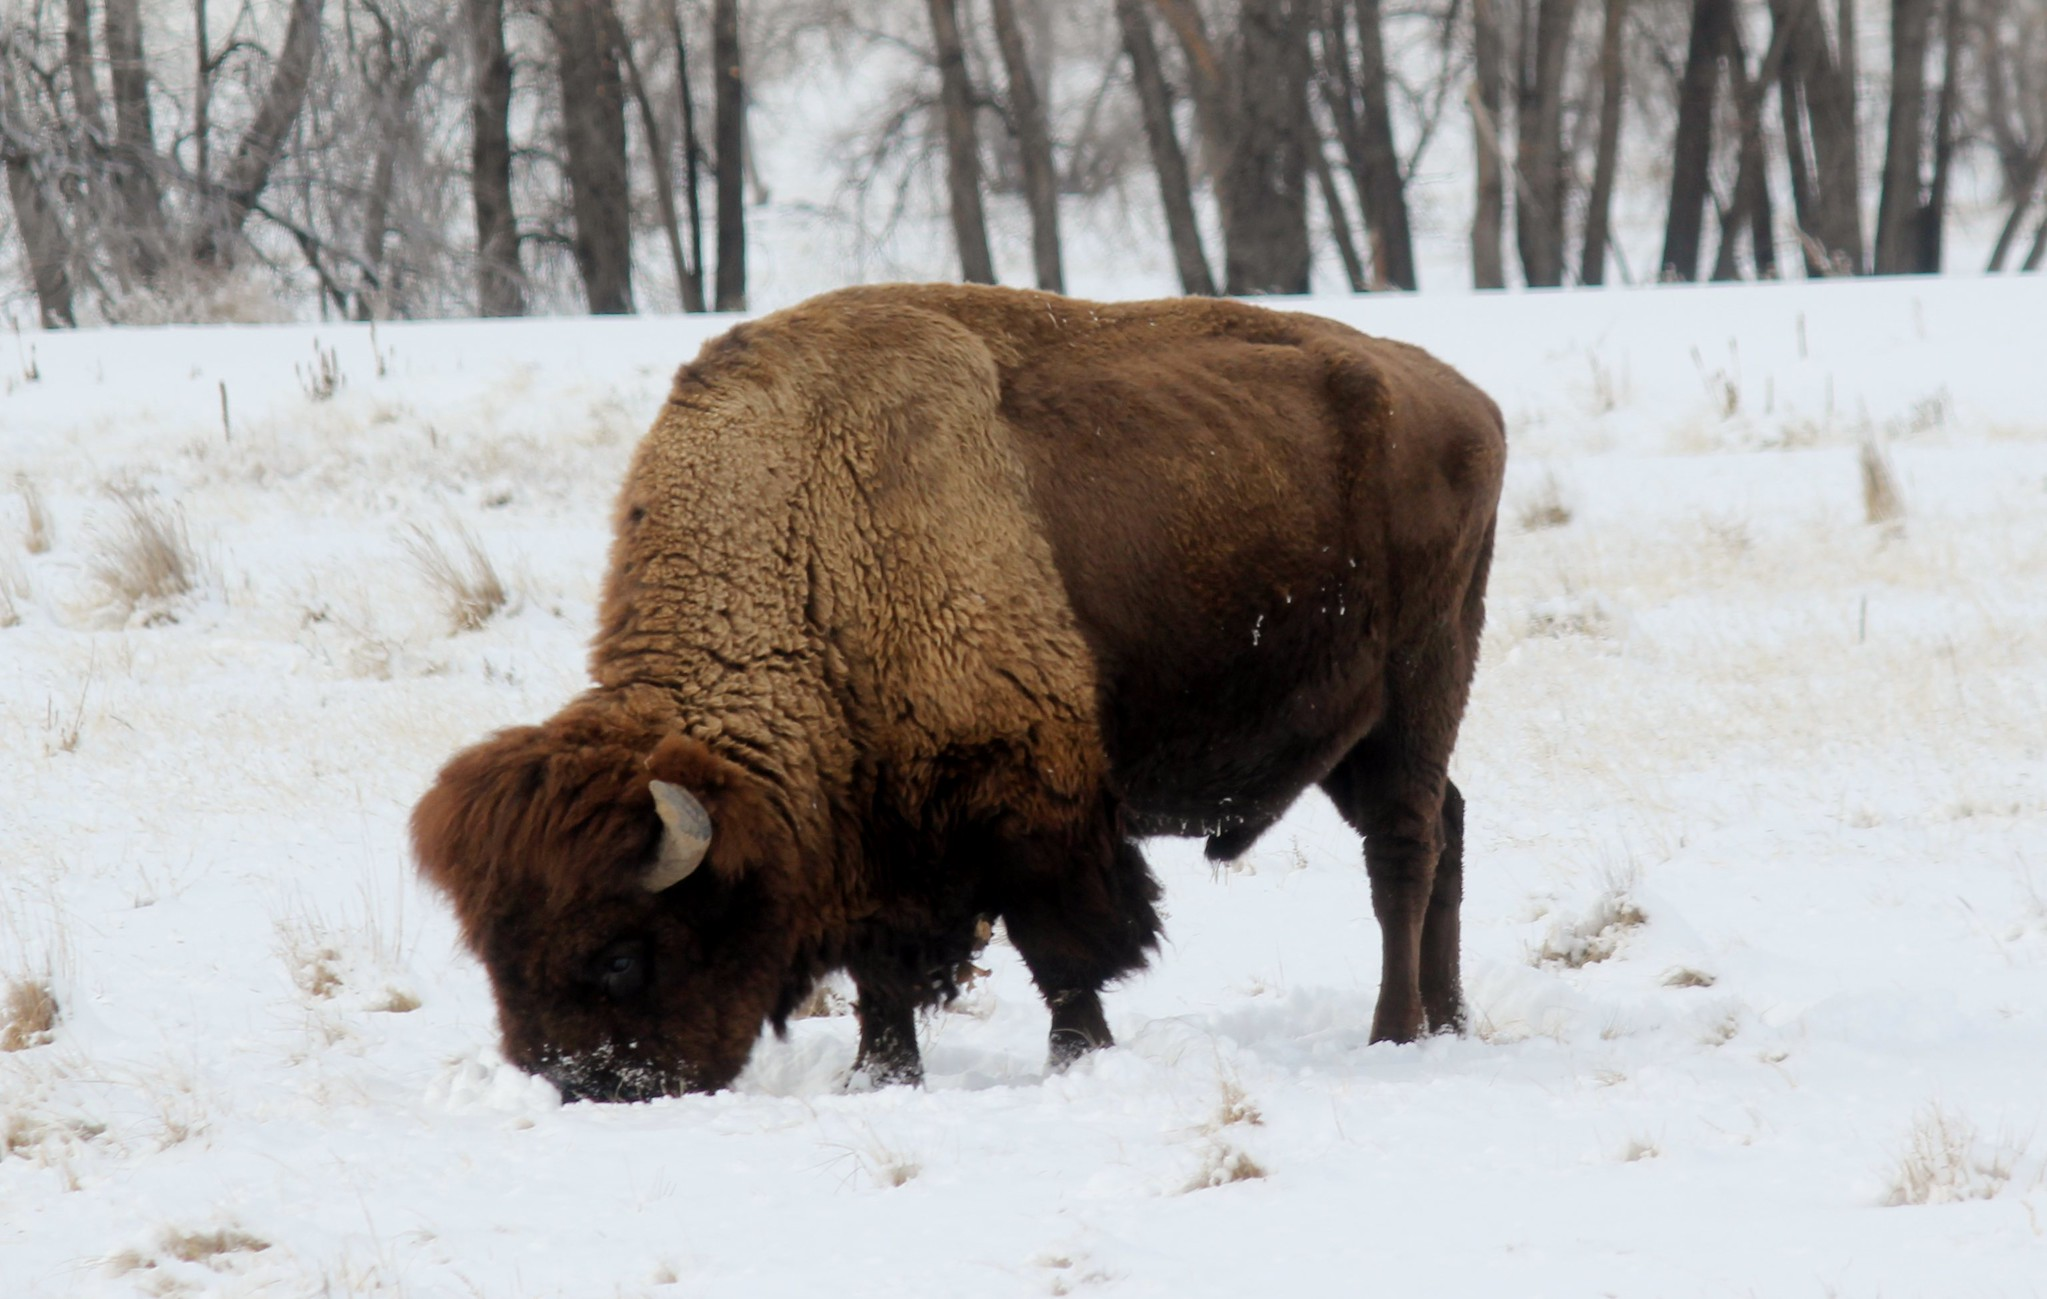 Free download high resolution image - free image free photo free stock image public domain picture -Bison